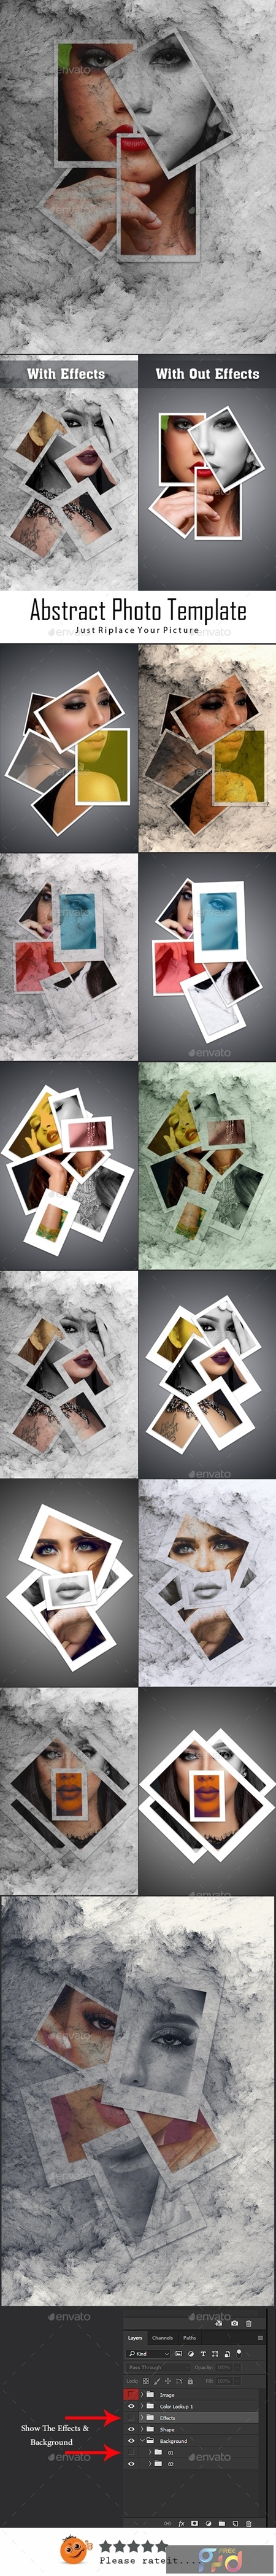 Abstract Photo Template 23805103 1